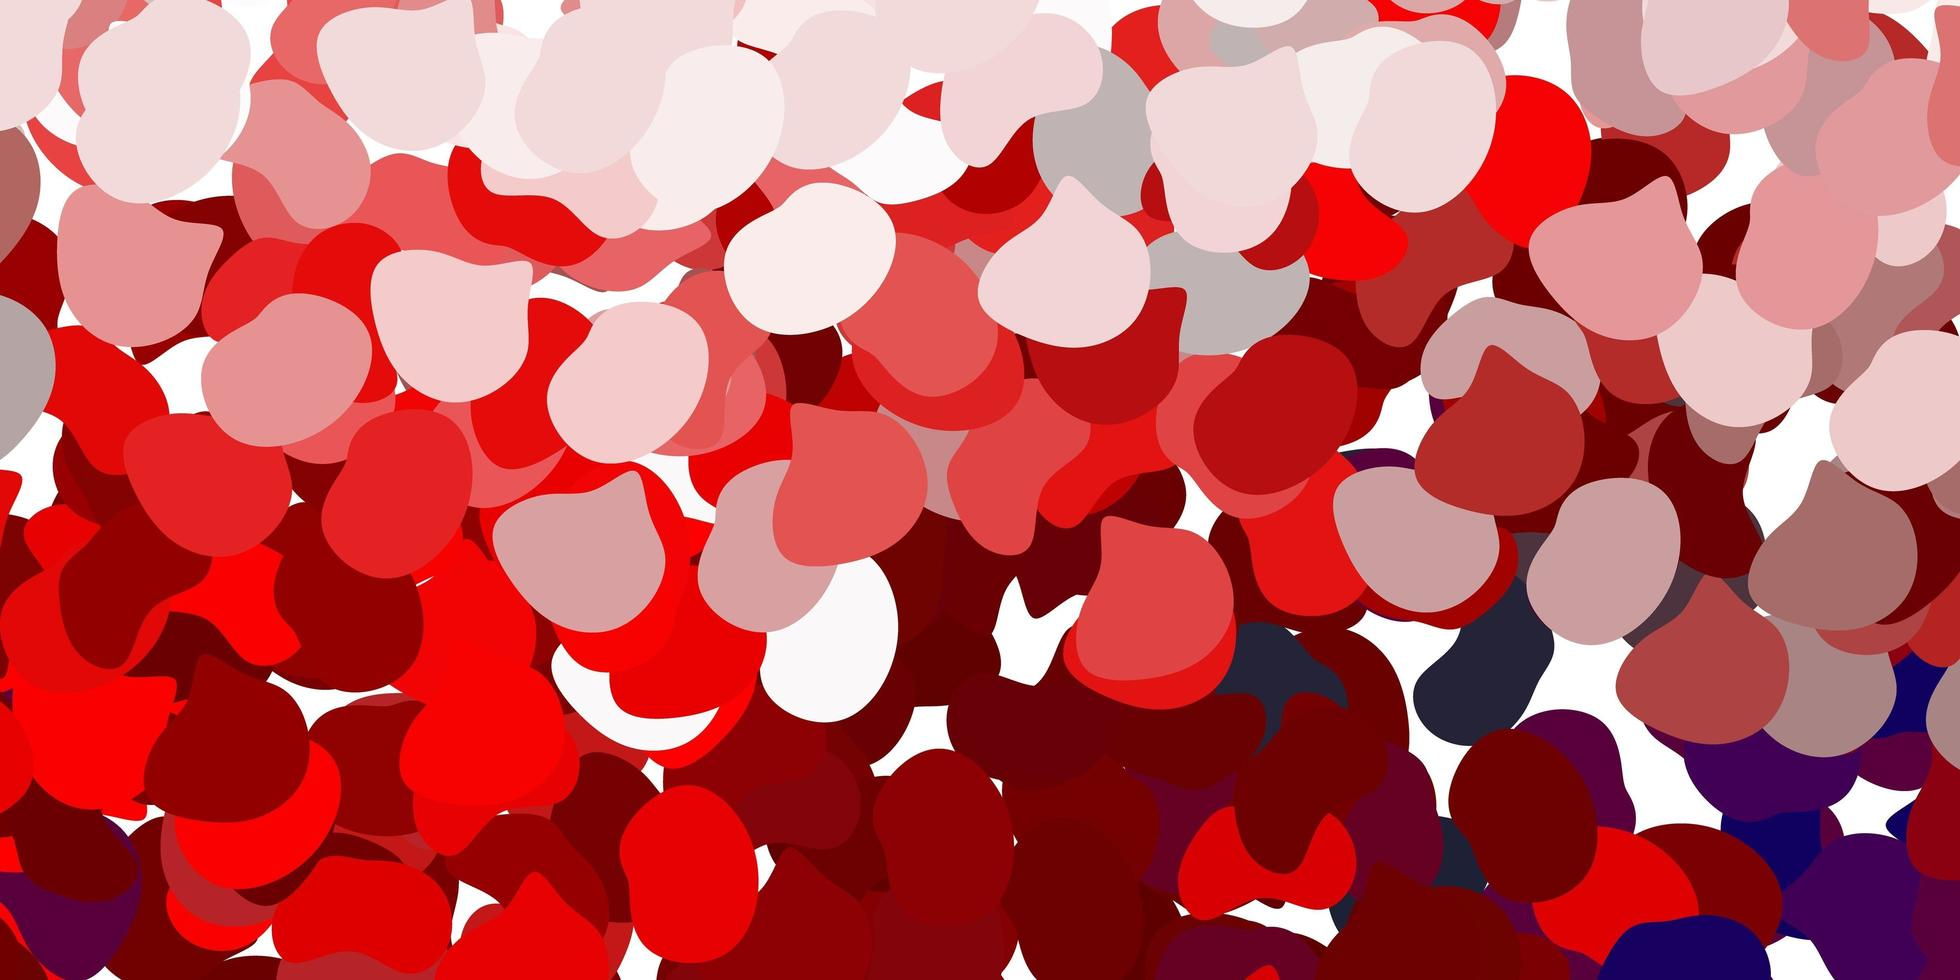 Light red pattern with abstract shapes vector